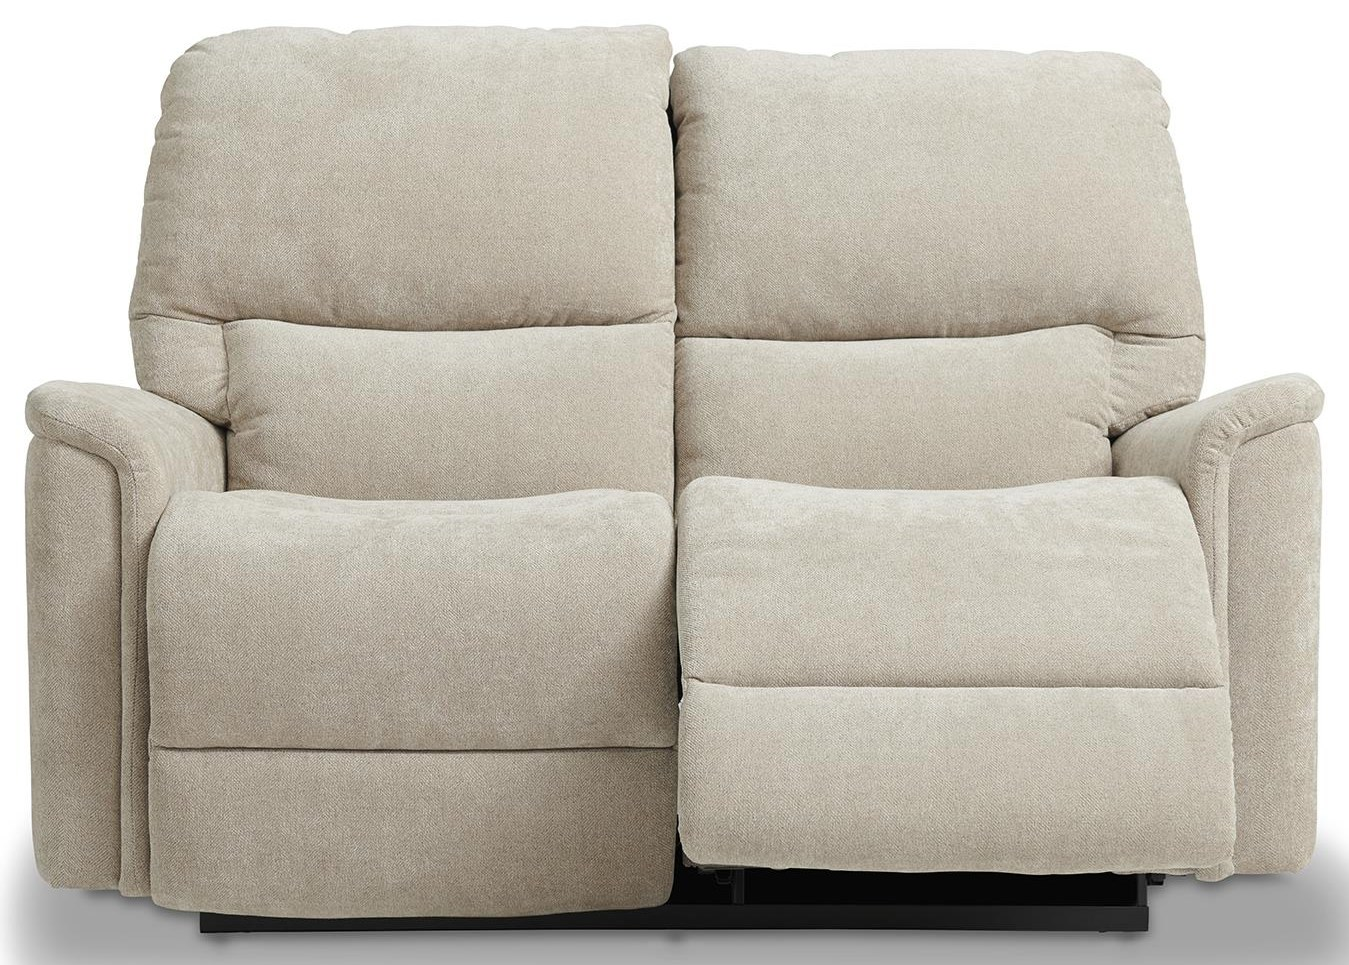 POWER RECLINING LOVESEAT WITH HEADREST